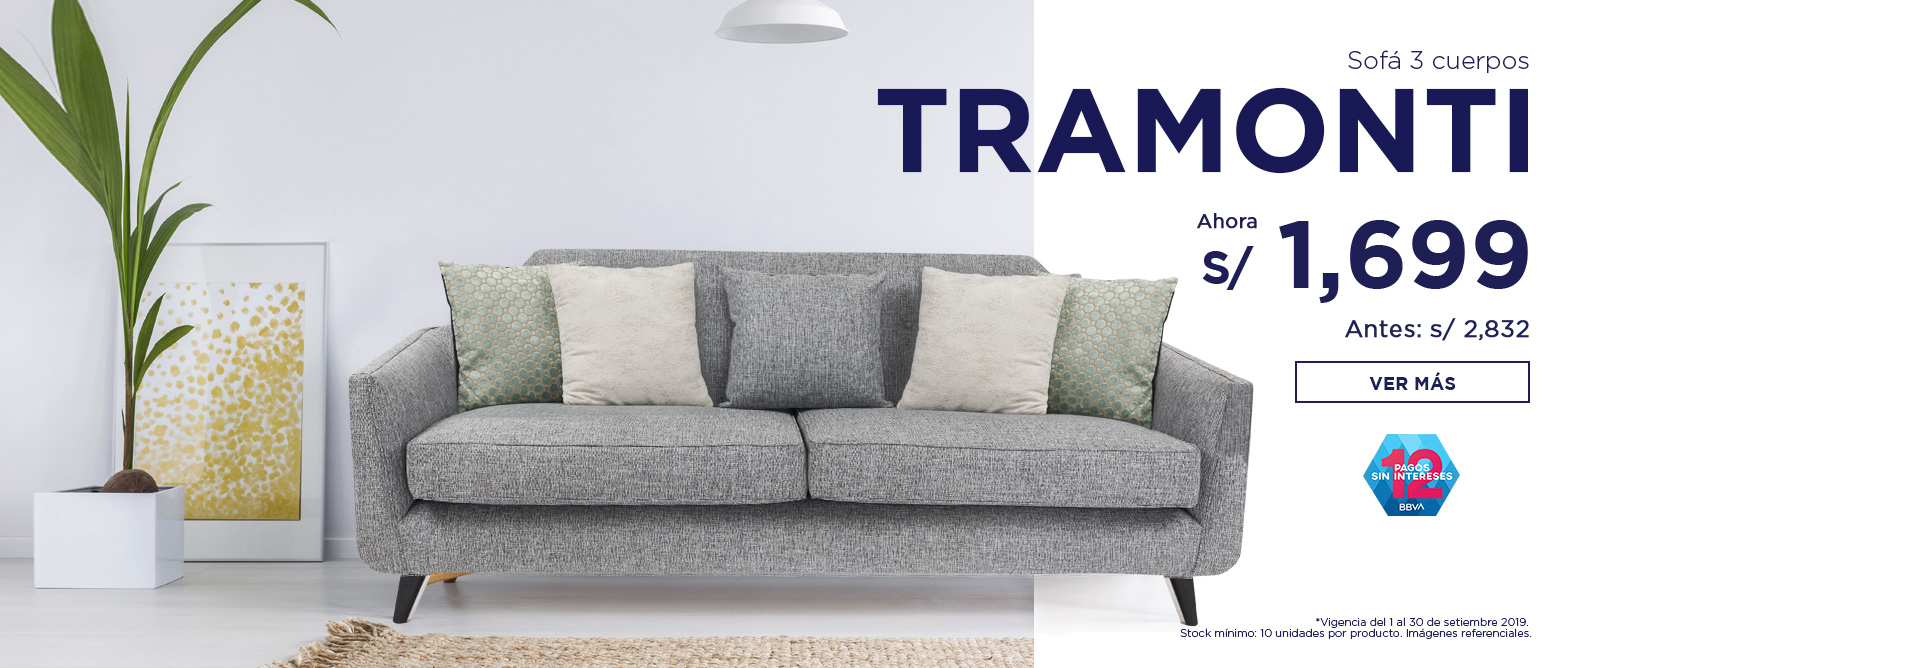 tramantoni sep